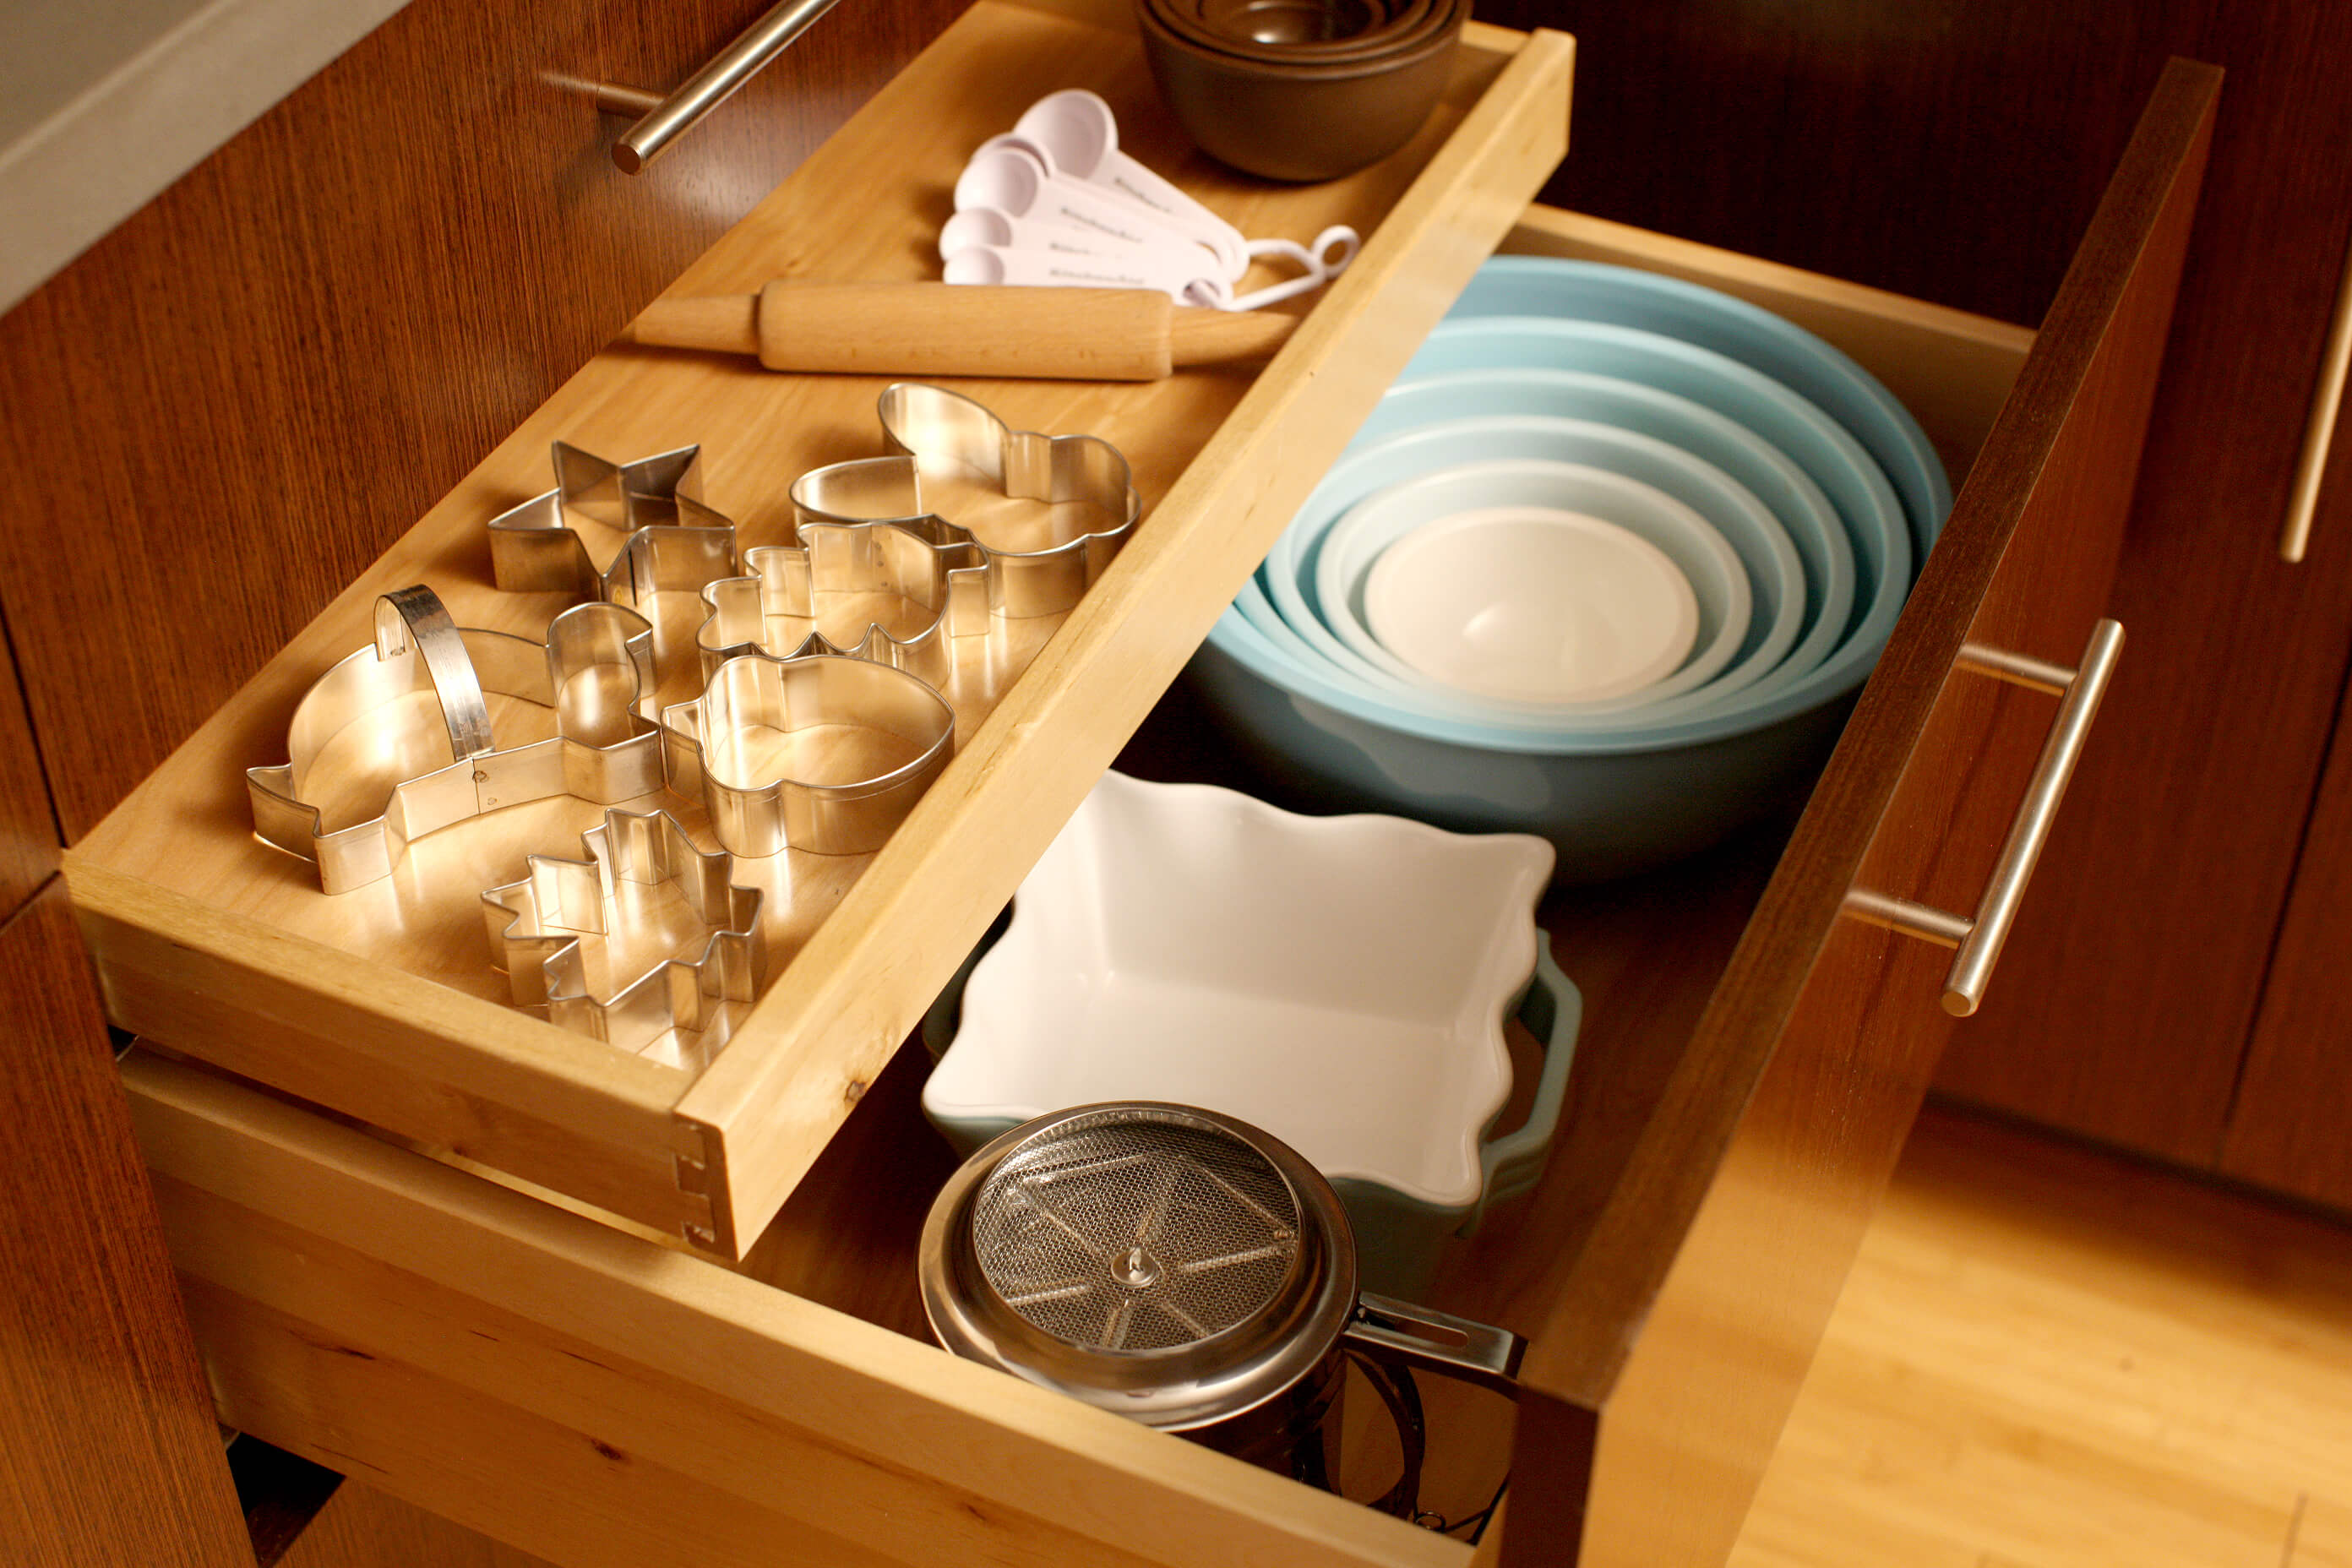 Keep all your baking supplies in one spot by using a deep drawer for mixing bowls with a small roll-out tray for your cookie cutters and misc. baking tools.